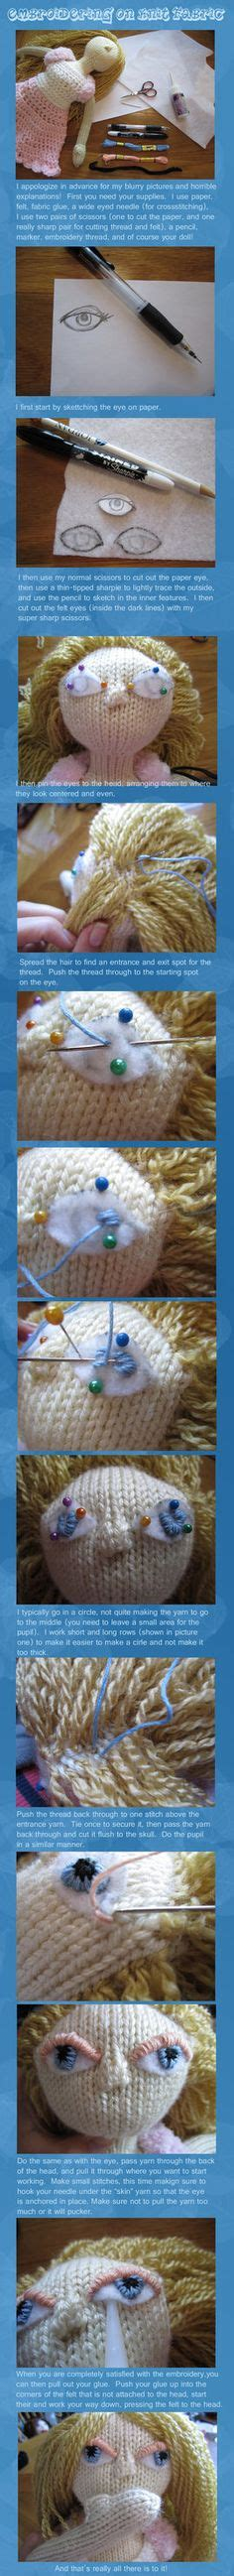 embroider on knitted toys 1000 images about how to embroider on